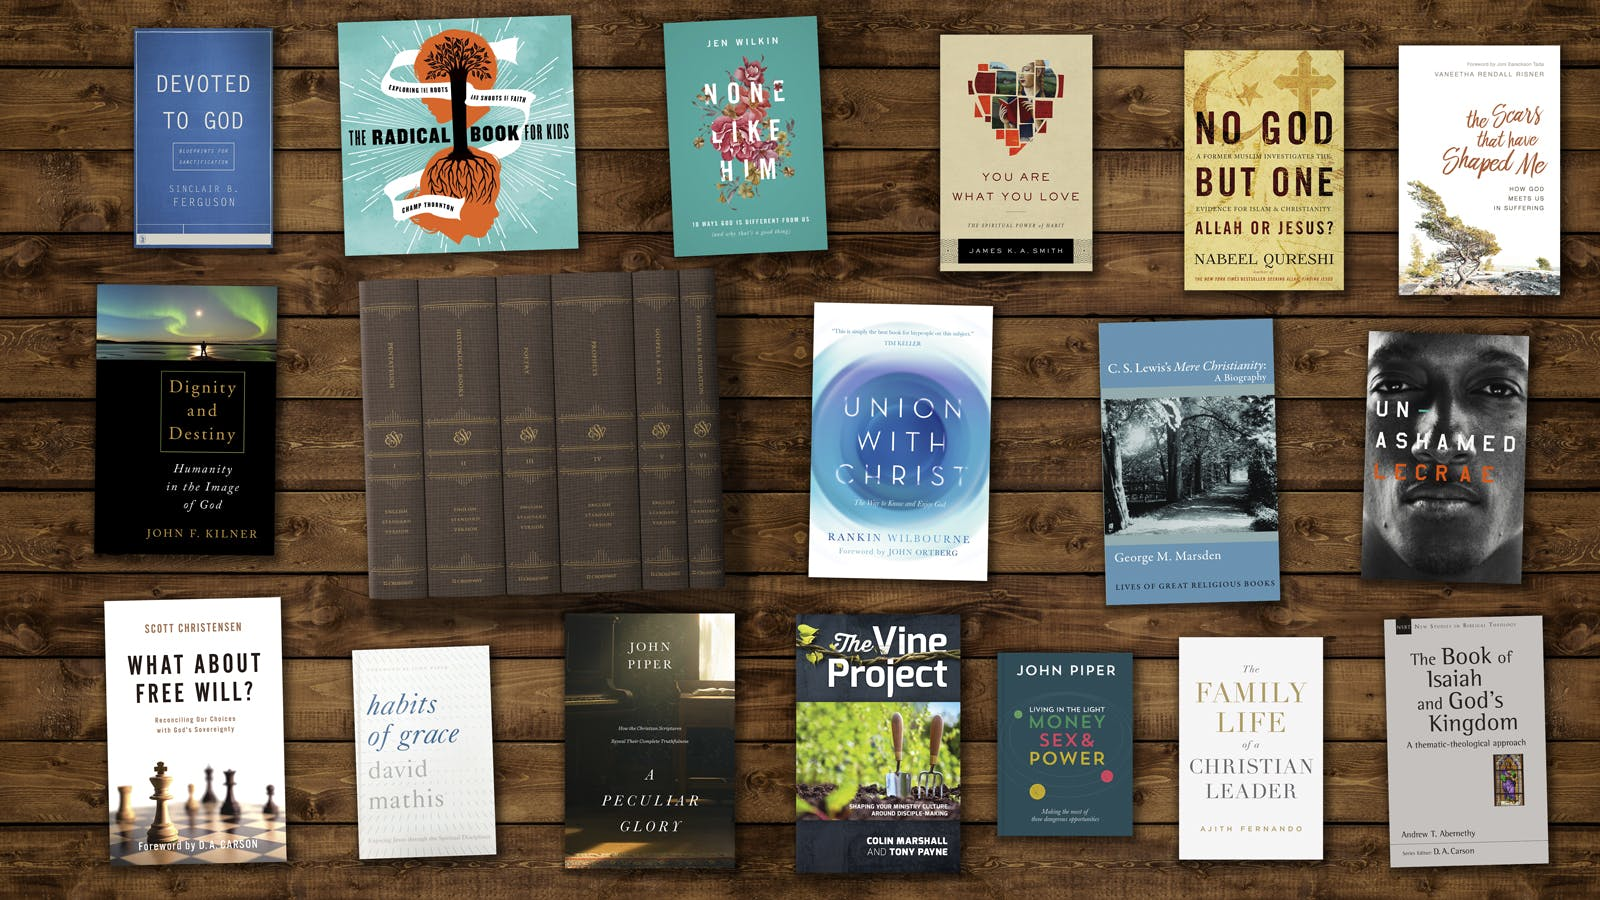 Top 16 books of 2016 desiring god top 16 books of 2016 malvernweather Choice Image